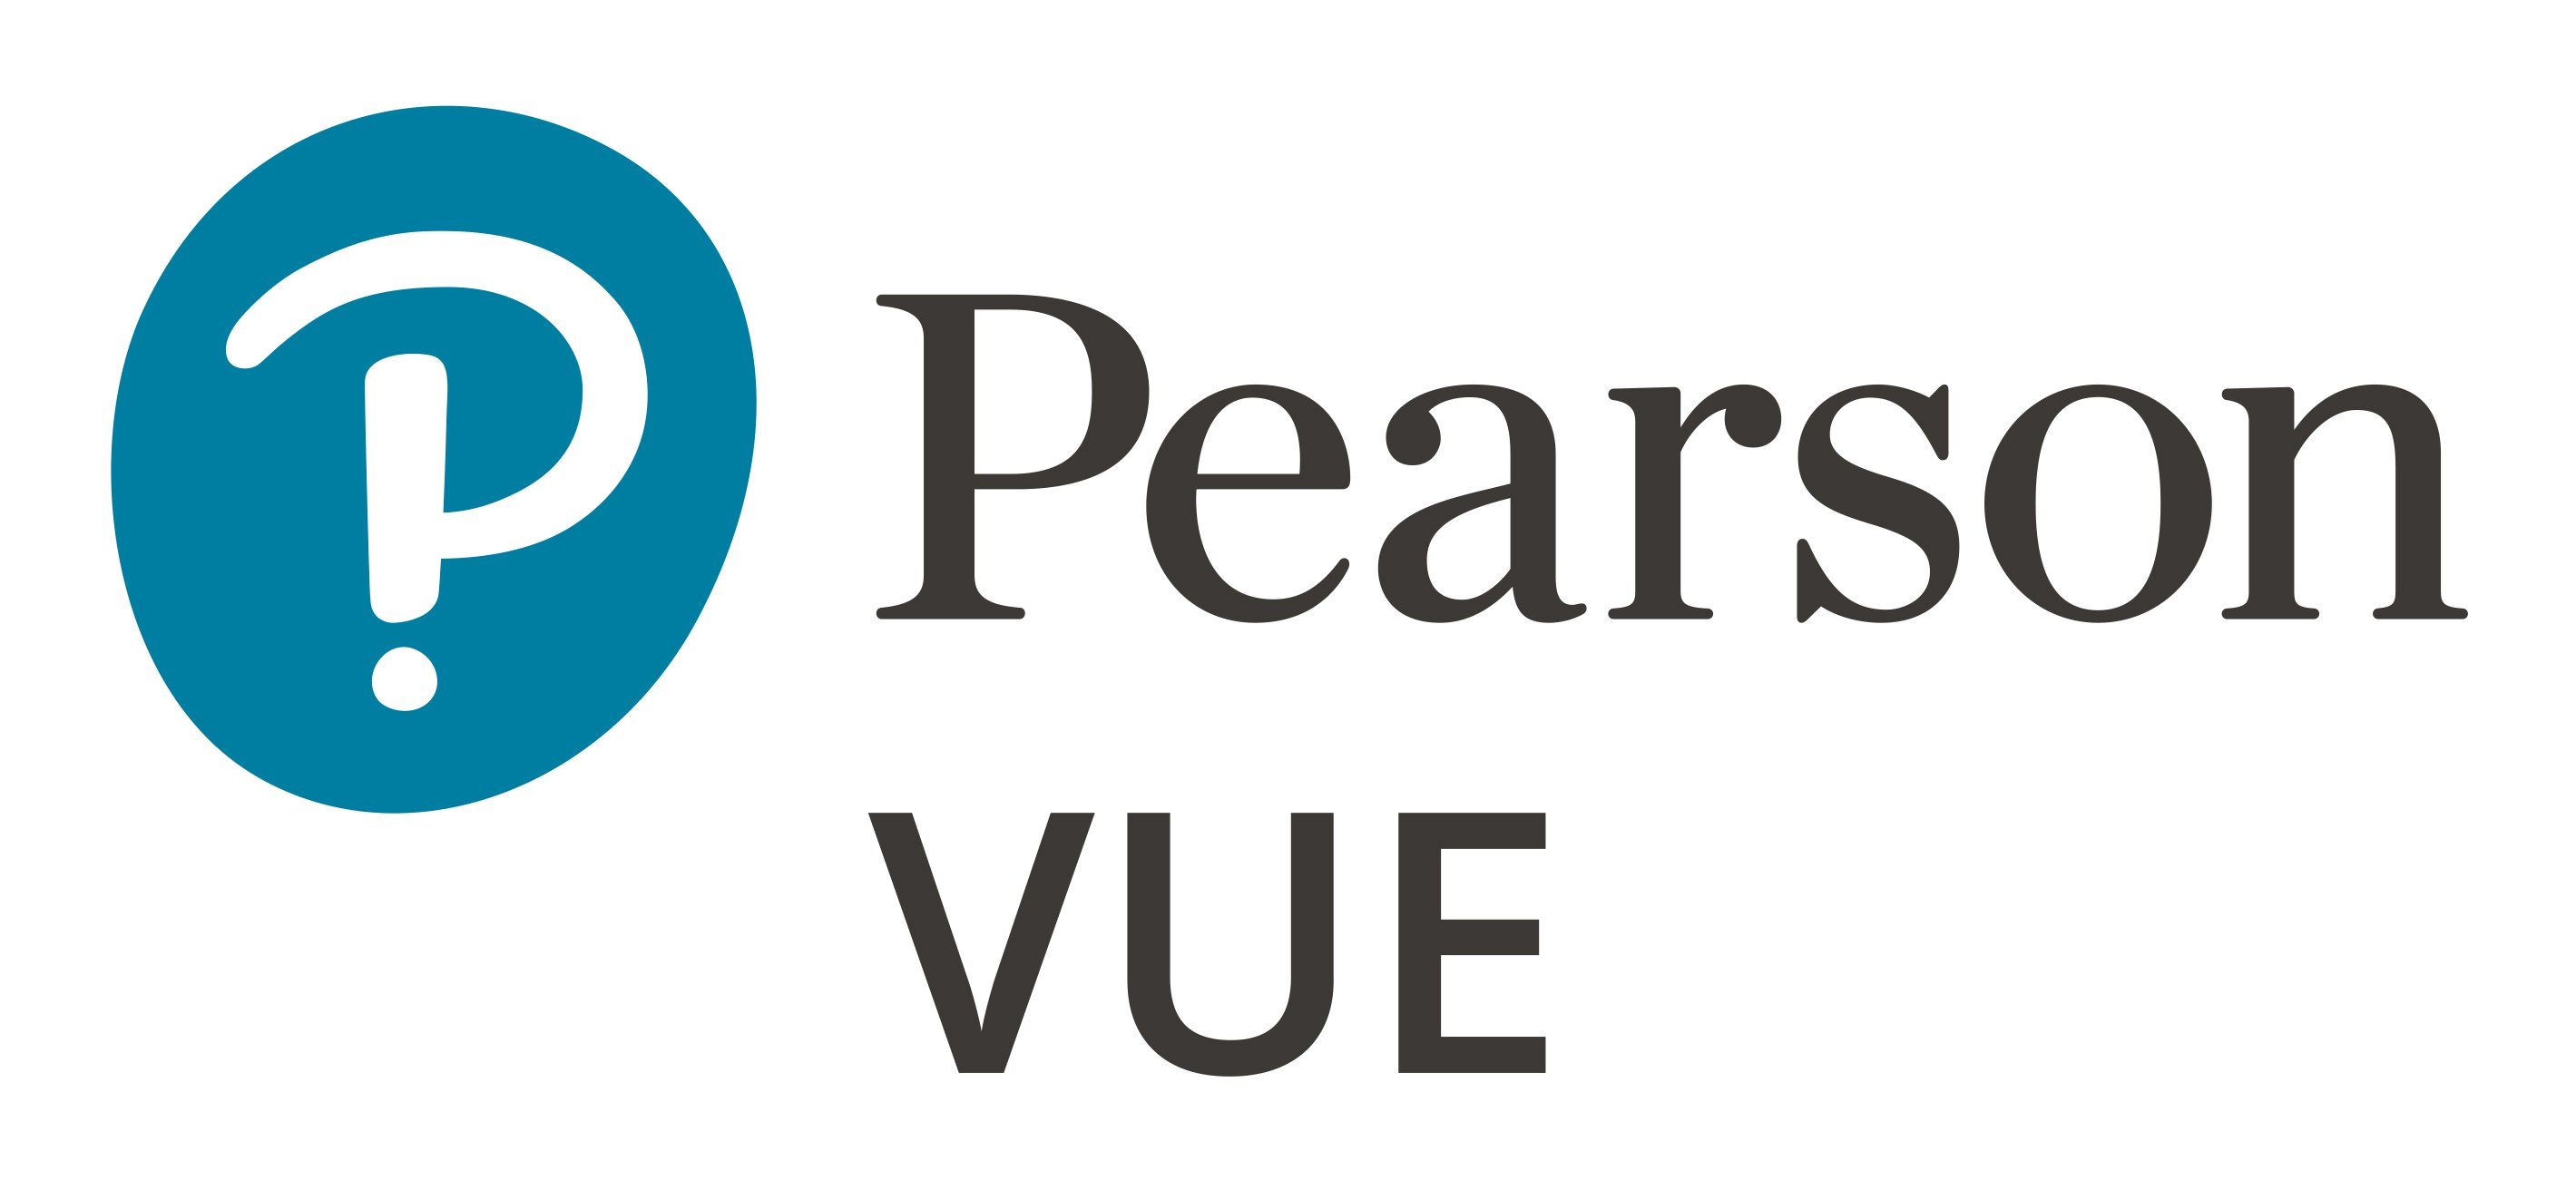 Each year millions of people around the world take an exam with Pearson VUE. Chances are you, or someone you know, has recently tested with us. More than 450 credential owners across the globe choose Pearson VUE to help develop, manage, deliver and grow their testing programmes. From online practice tests to high-stakes, proctored exams that require the industry's most secure testing environments, Pearson VUE is the leader in computer-based-testing — and much more